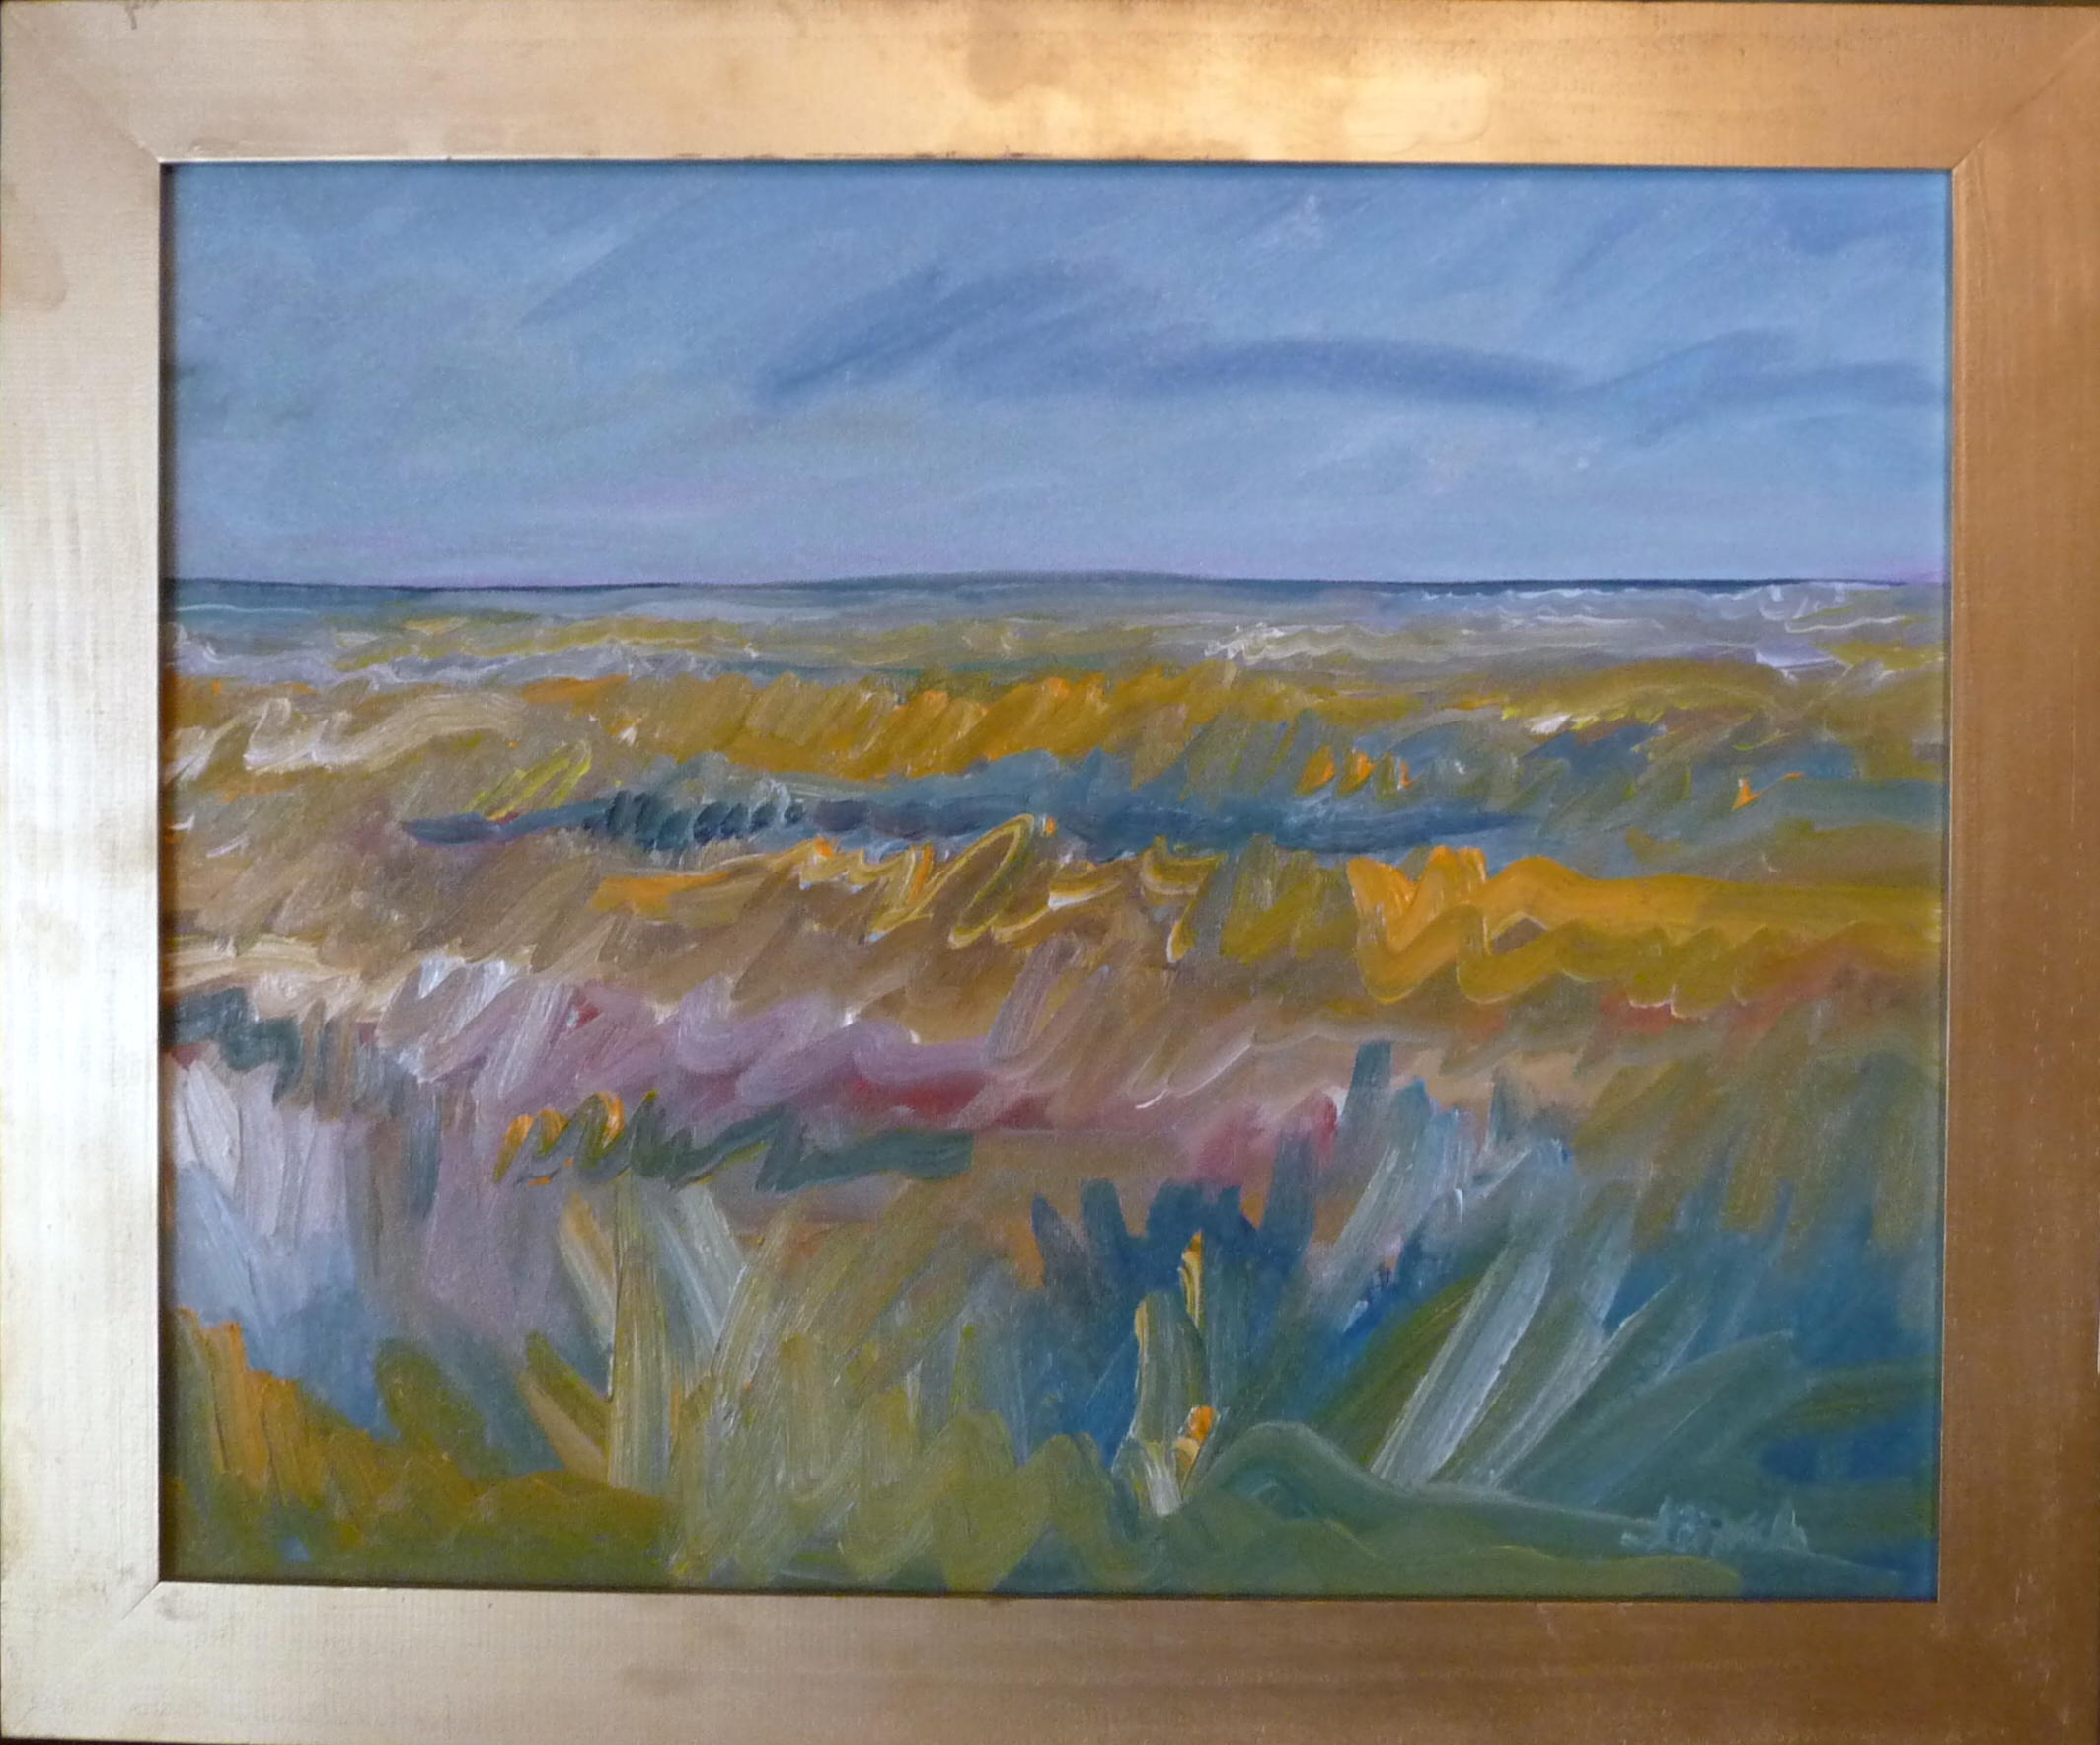 'PRAIRIE GRASS' 16X20 OIL PAINTING